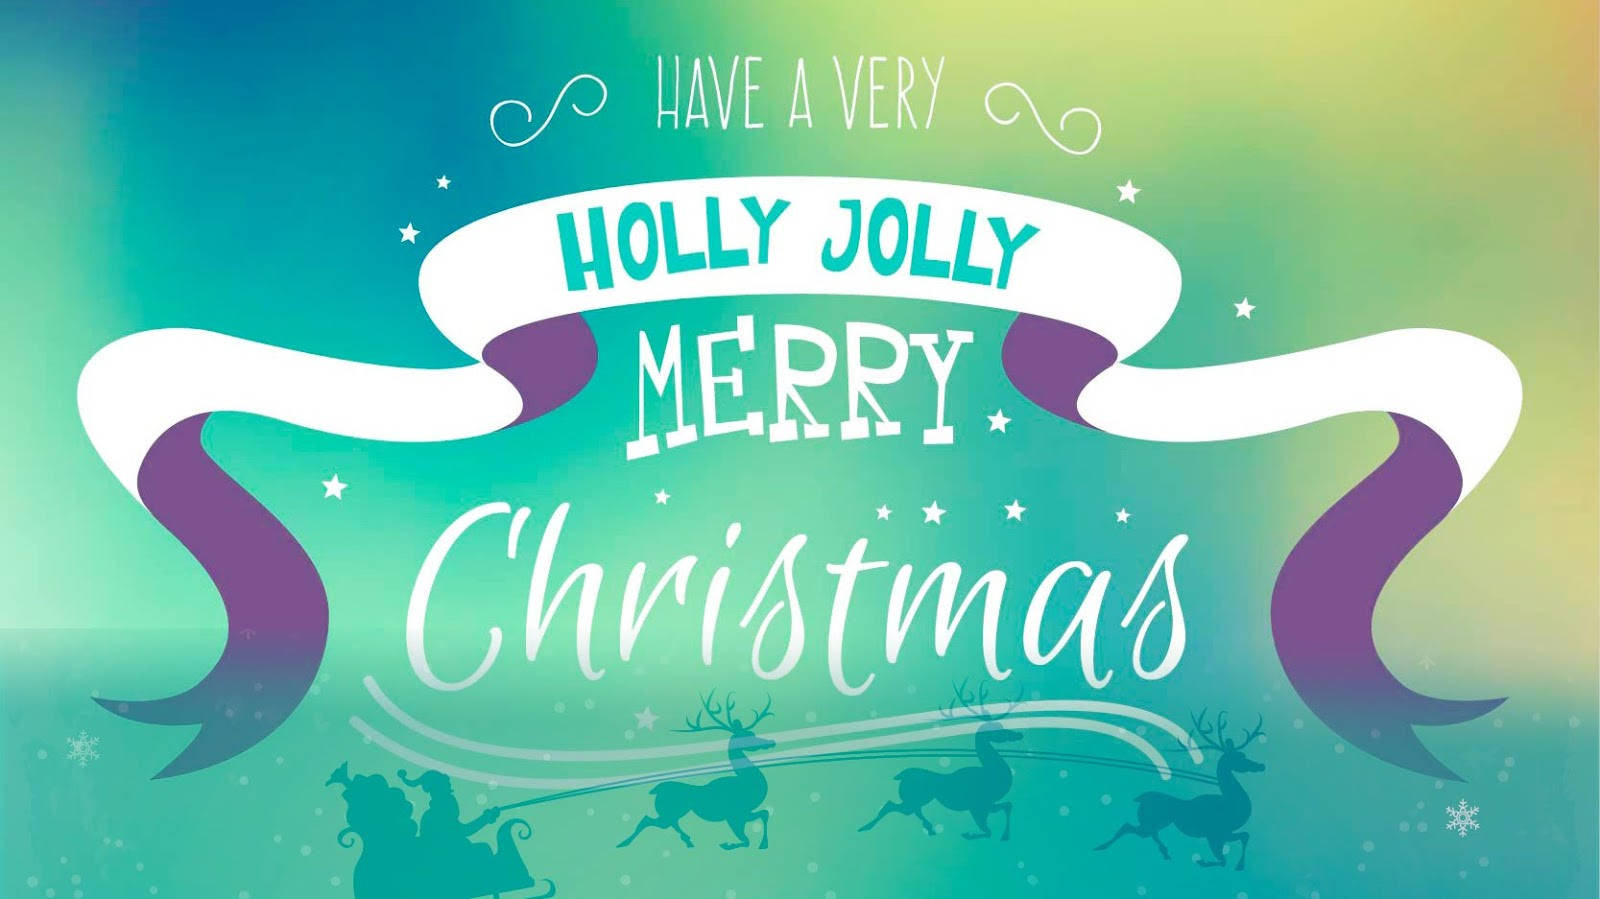 Christmas greetings in english 2017 merry christmas greetings for best happy christmas greetings in english kristyandbryce Choice Image